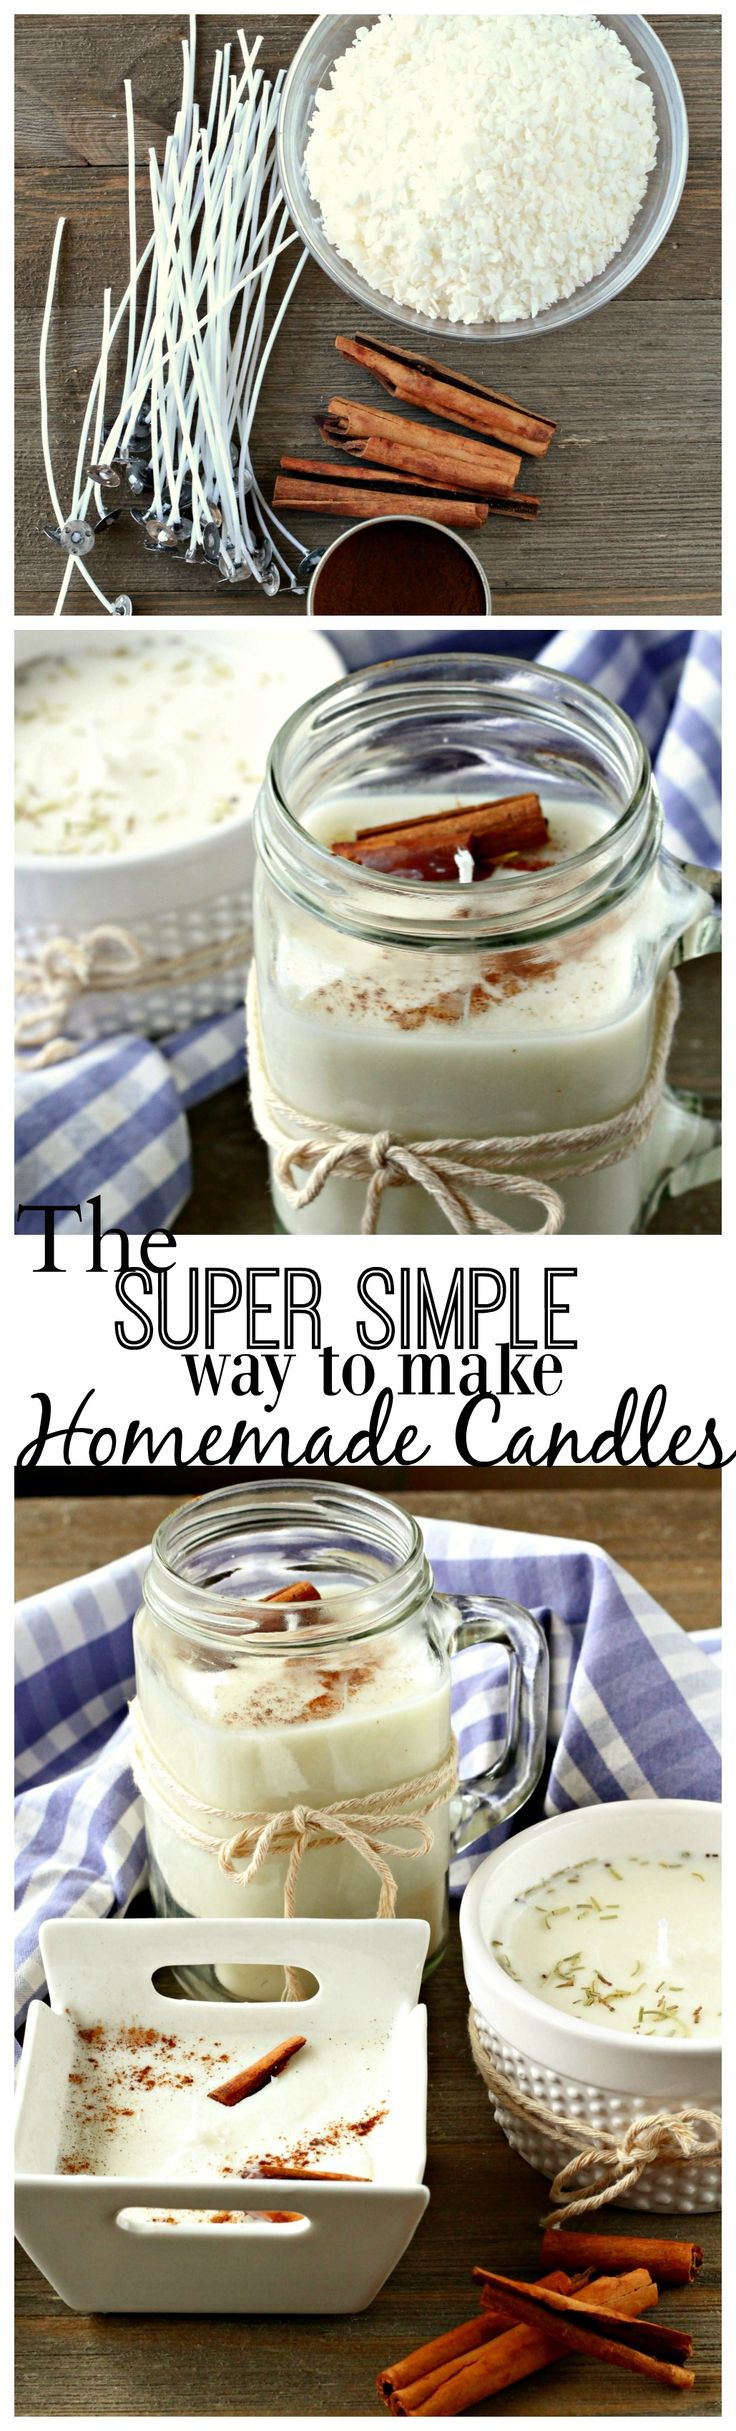 Home home decoration candles amp candle holders scented candles - Homemade Candles The Easy Way